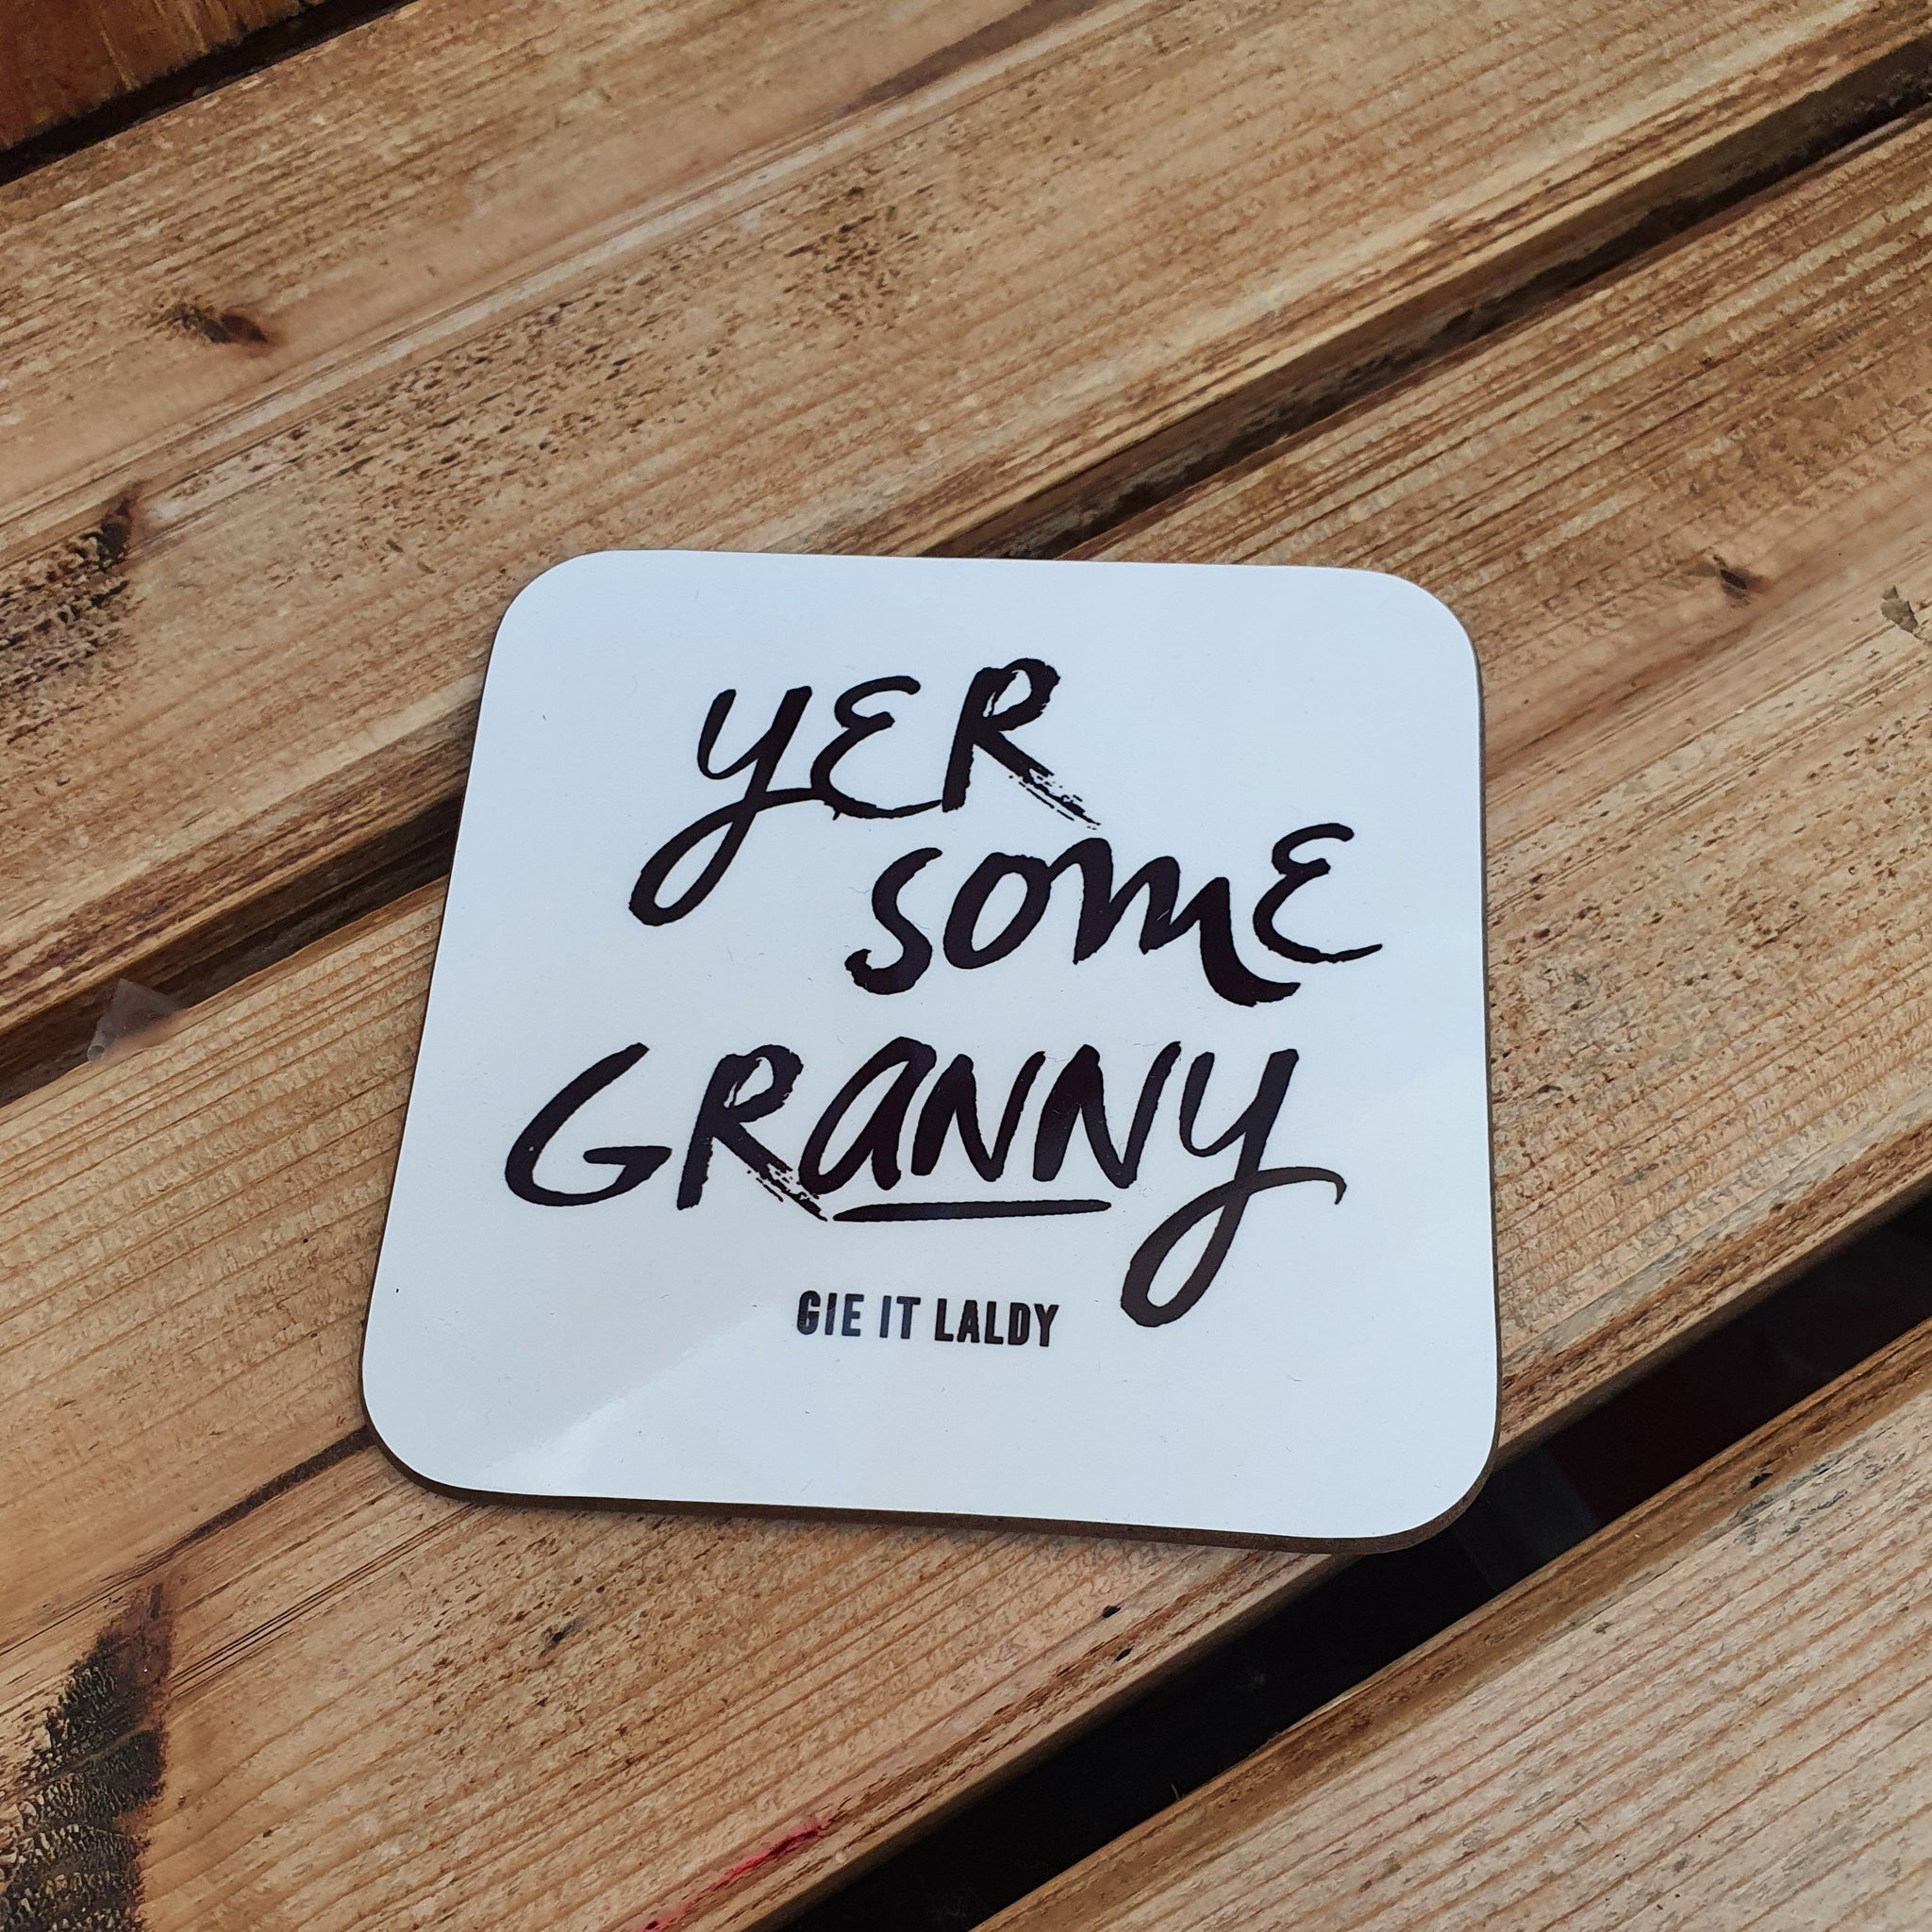 Scottish Slogan Monochrome Coaster featuring the text -  'Yer Some Granny'